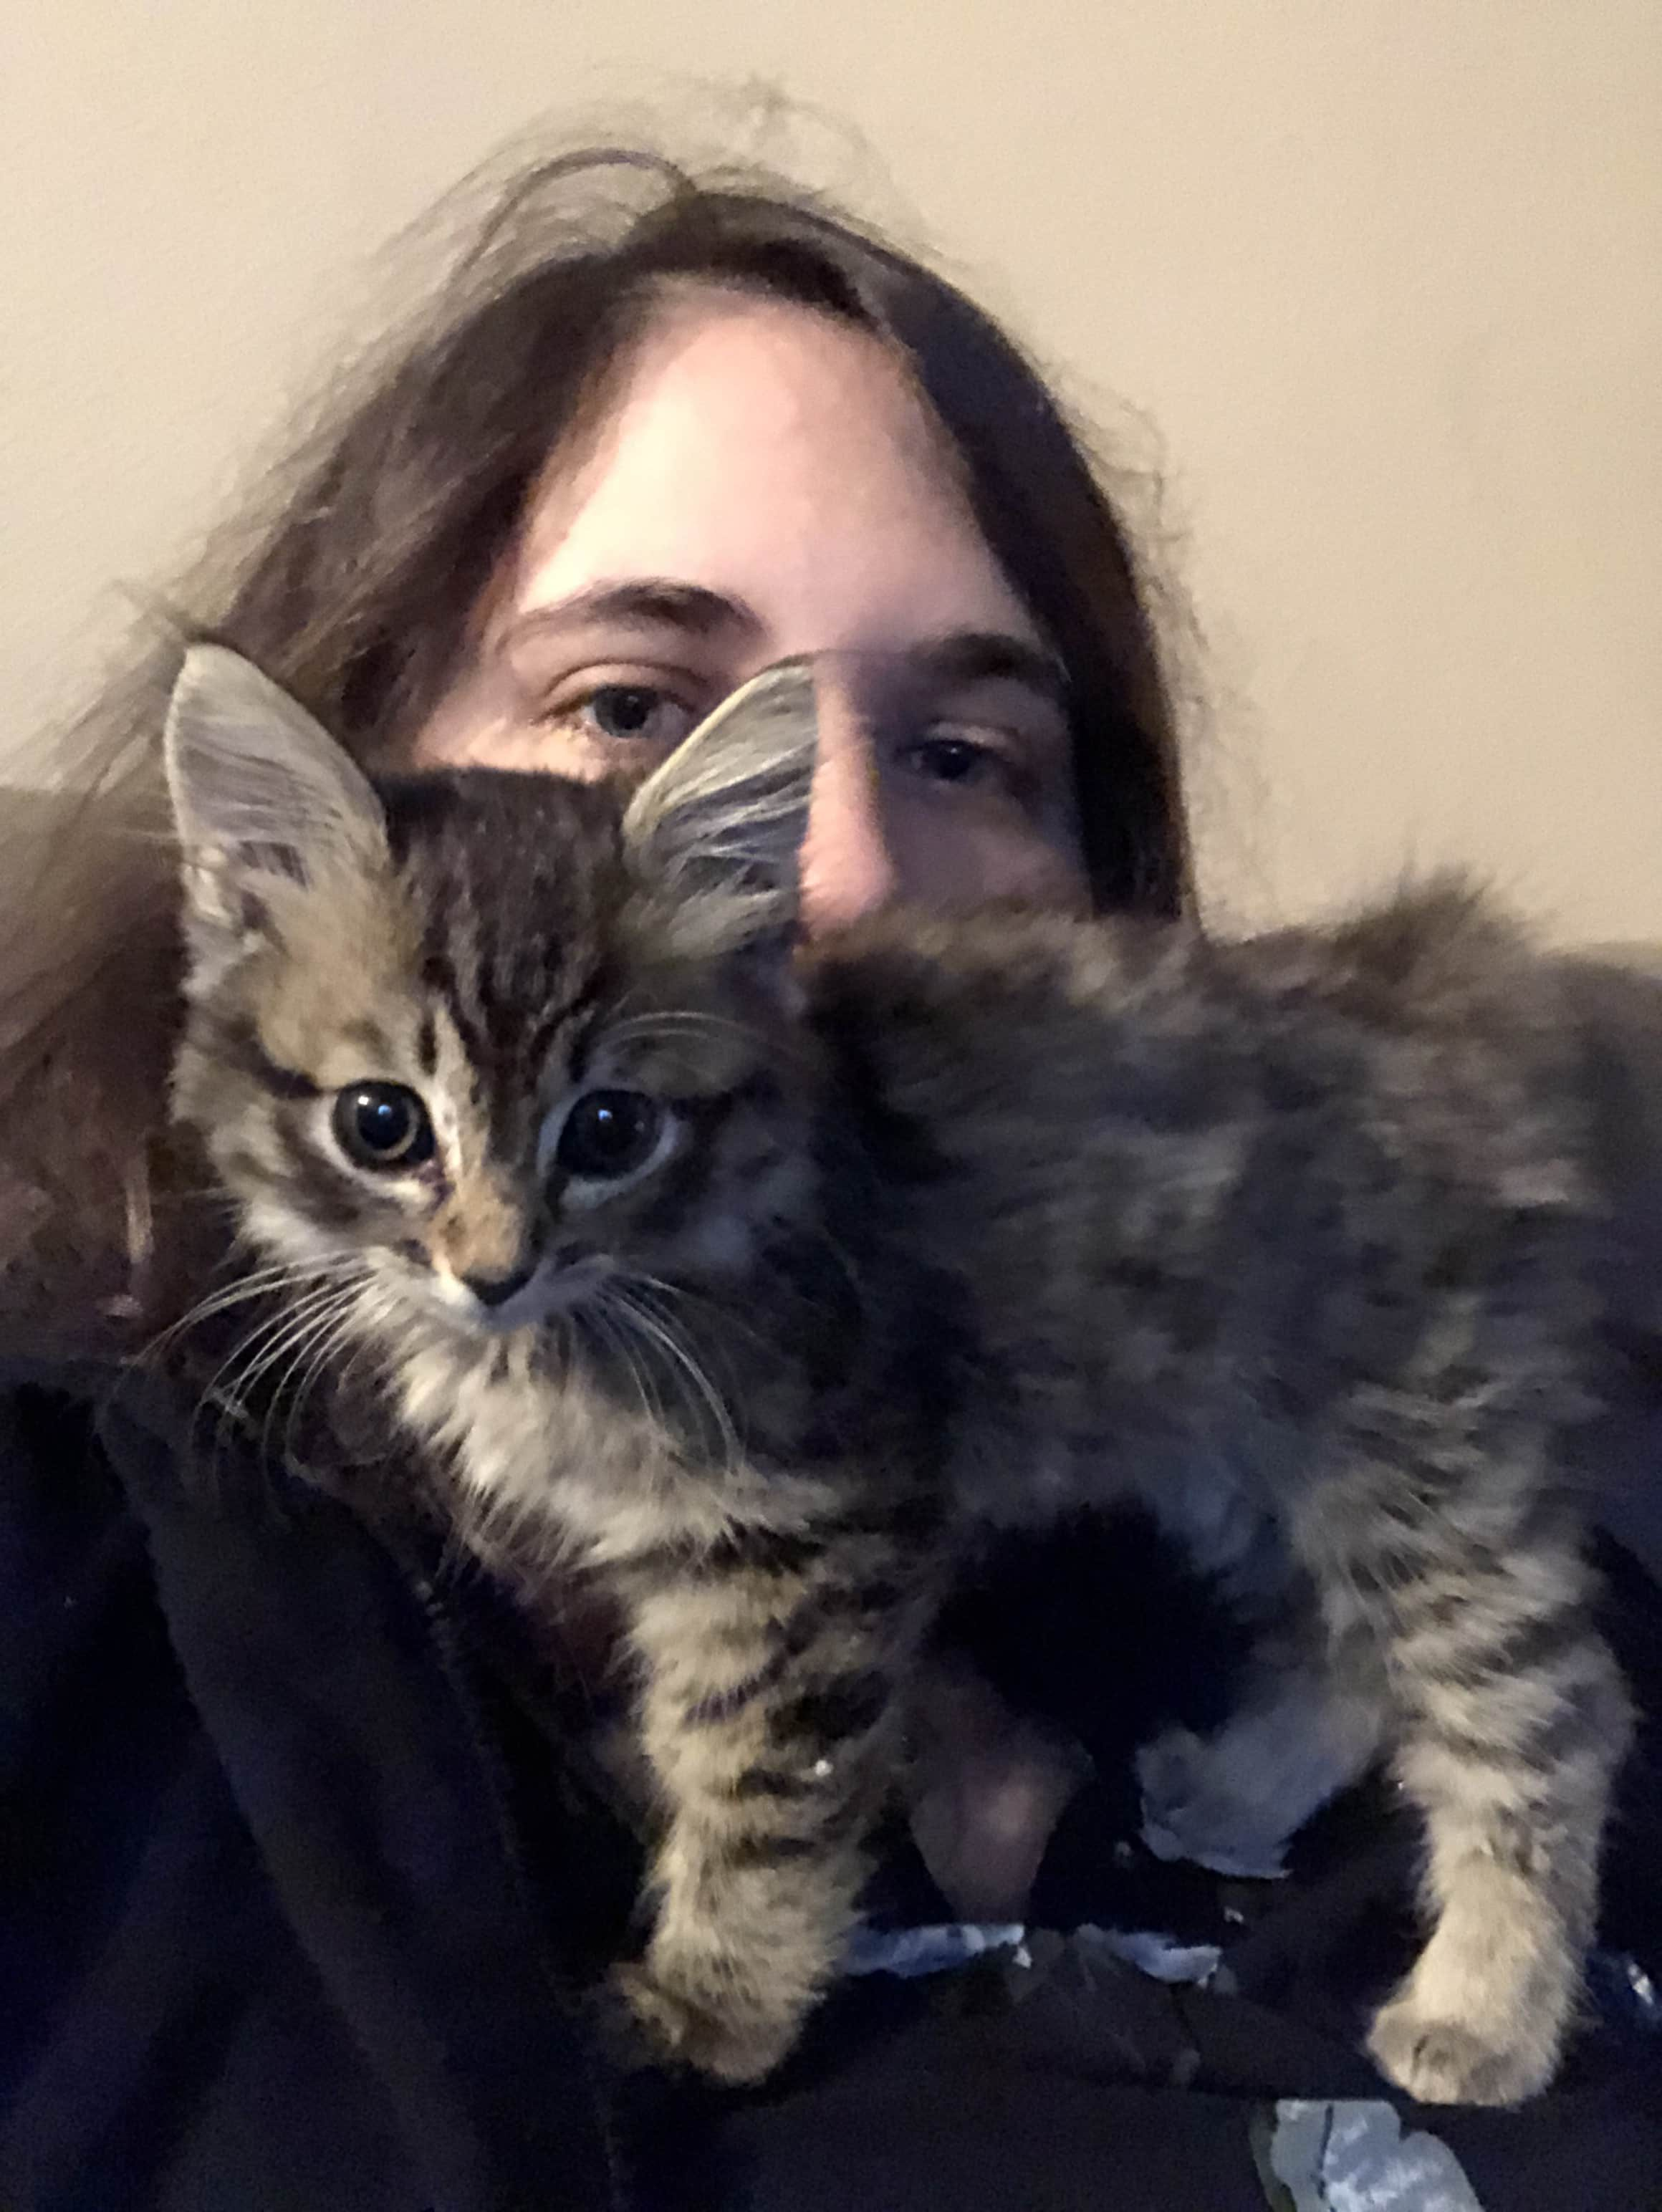 Arya the siberian cat standing on top of me.